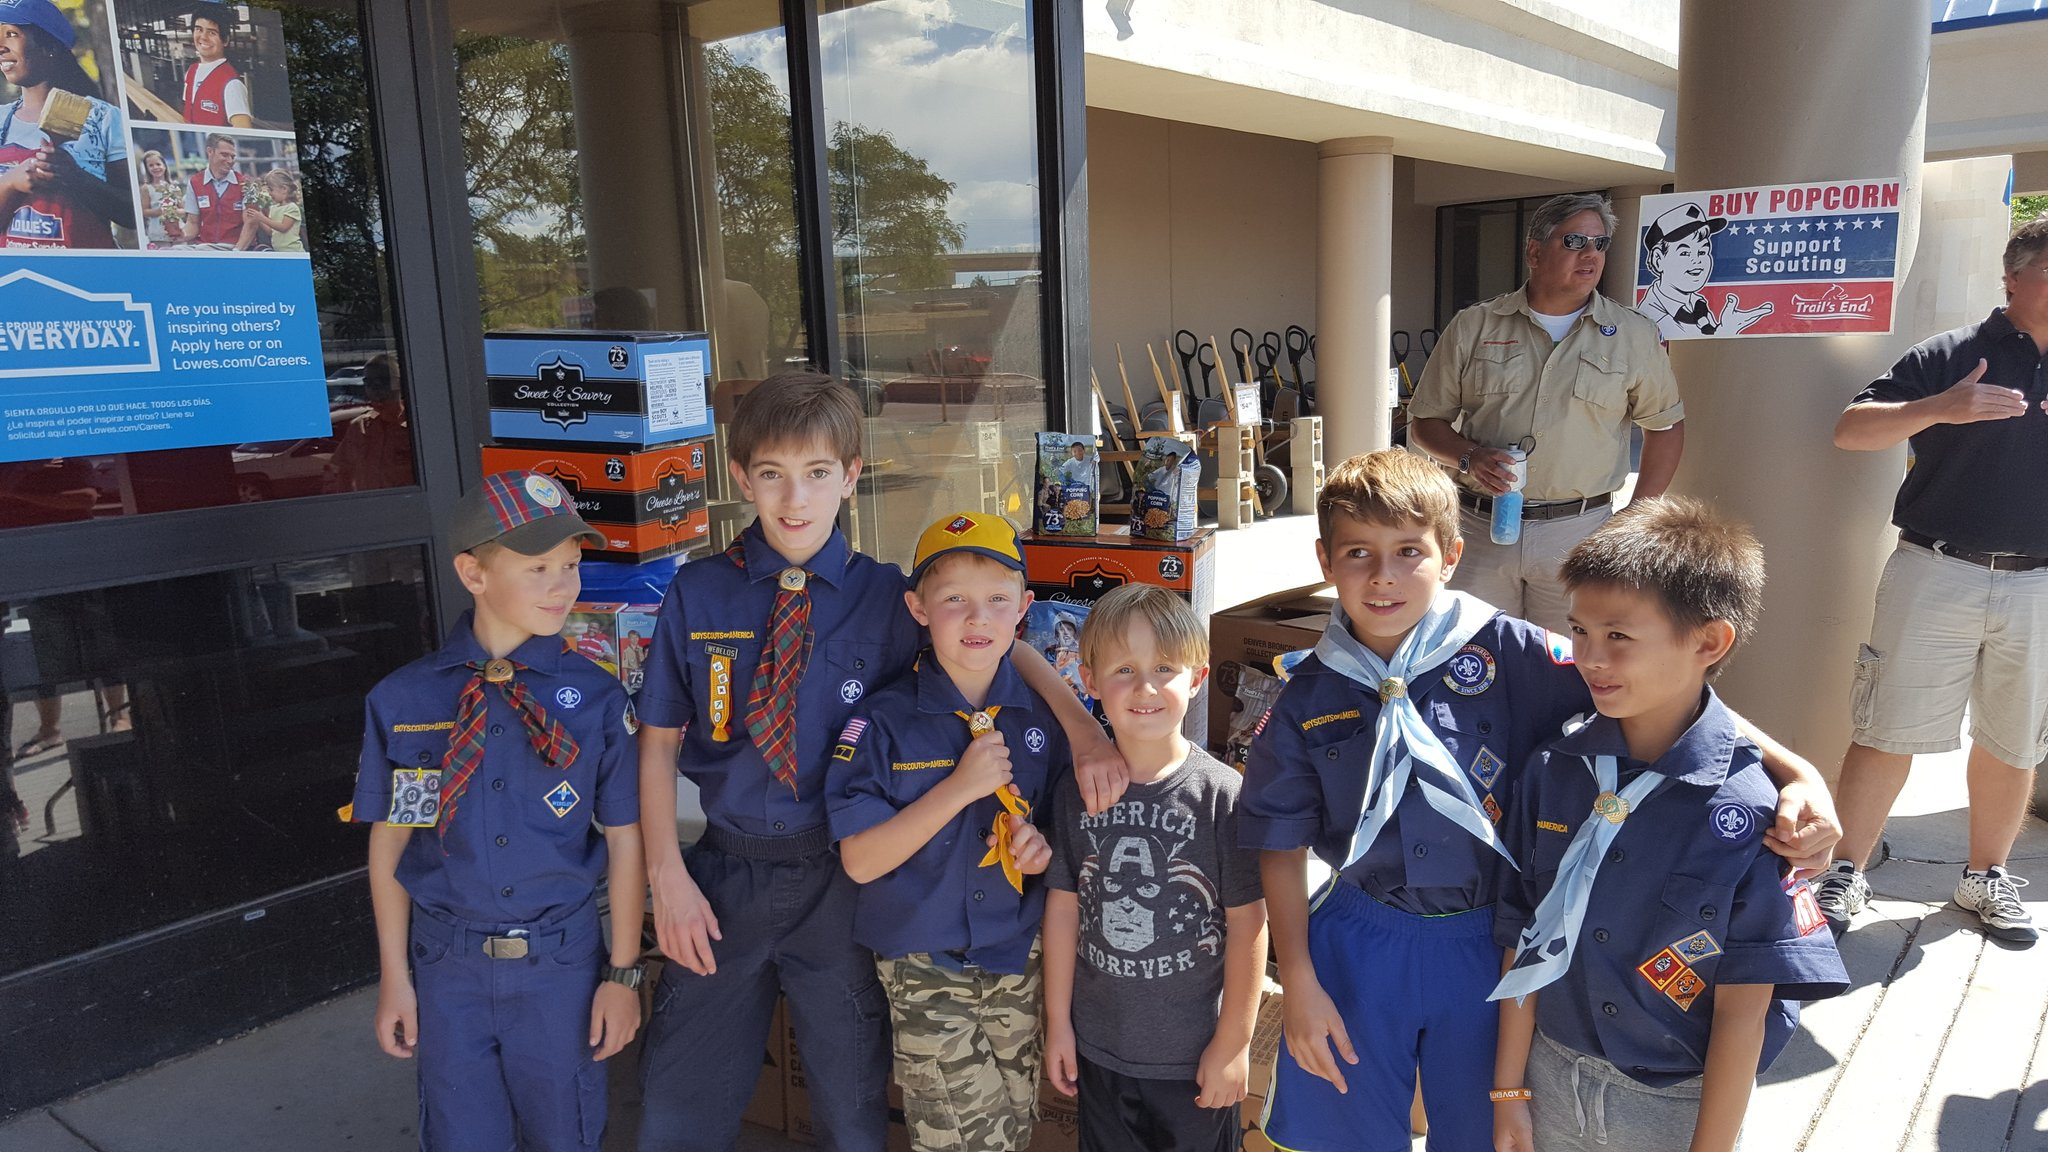 Popcorn and Scouts